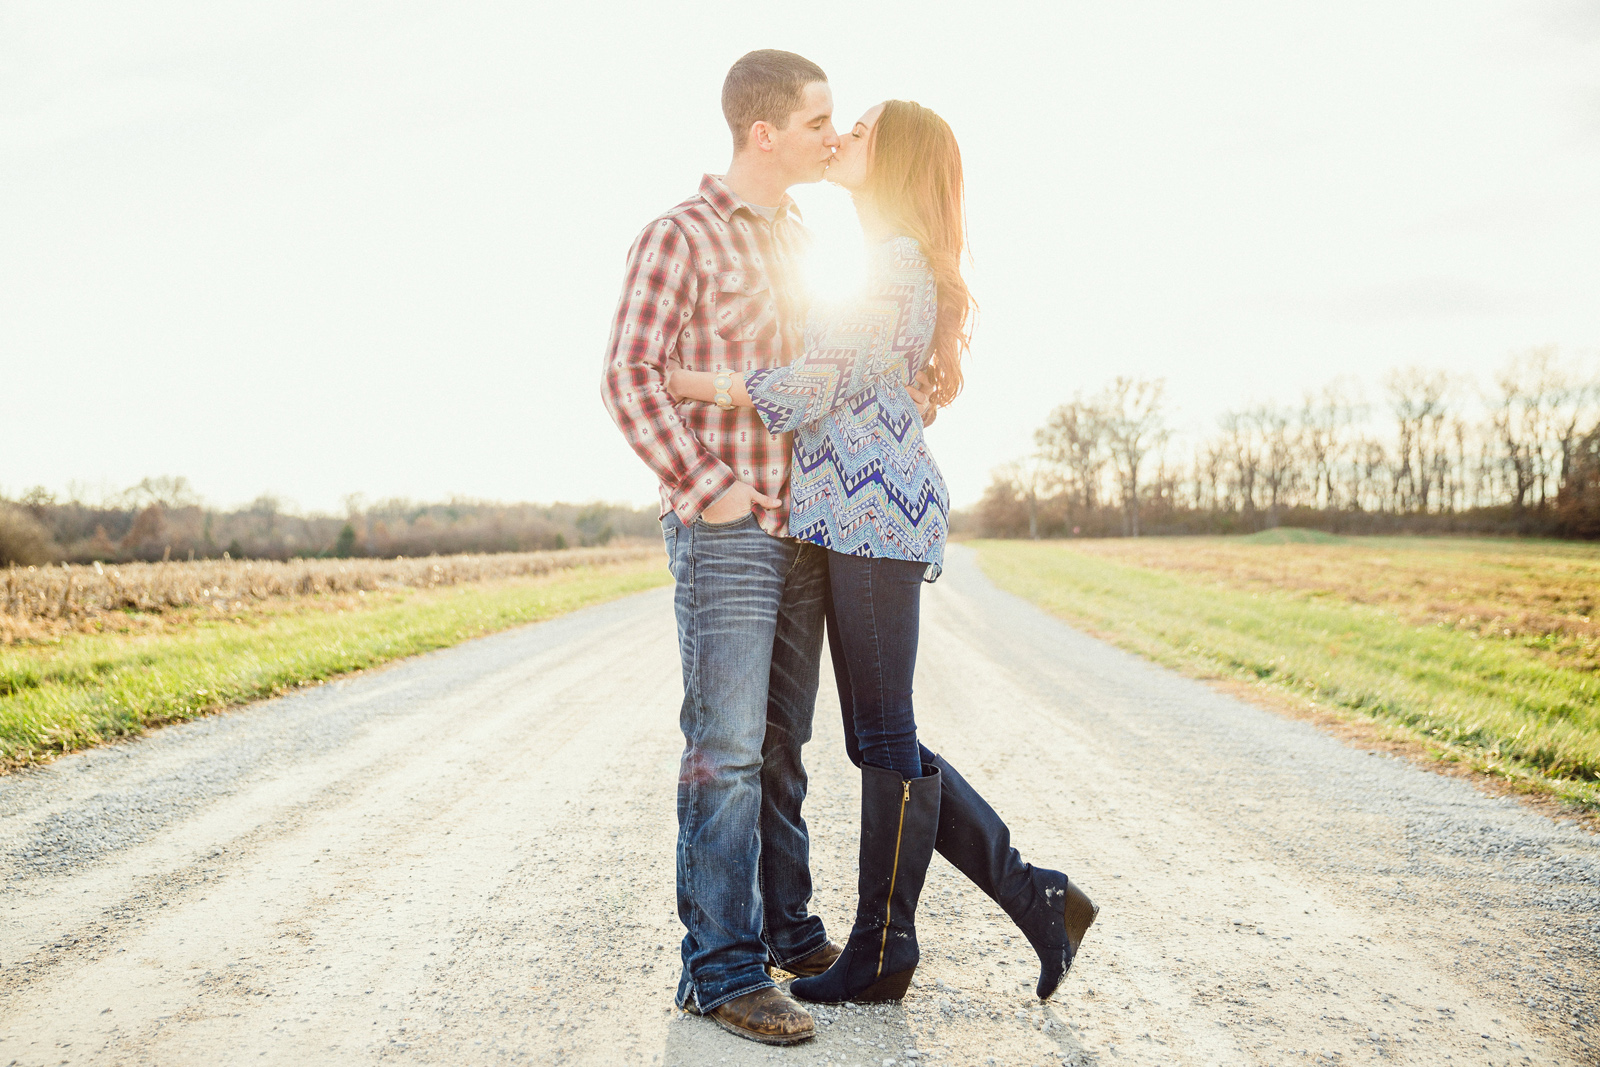 Oldani-Photography-St-Charles-August-A-Busch-Memorial-Area-Engagement-Session-engagement-photos_20141128_163550-2.jpg